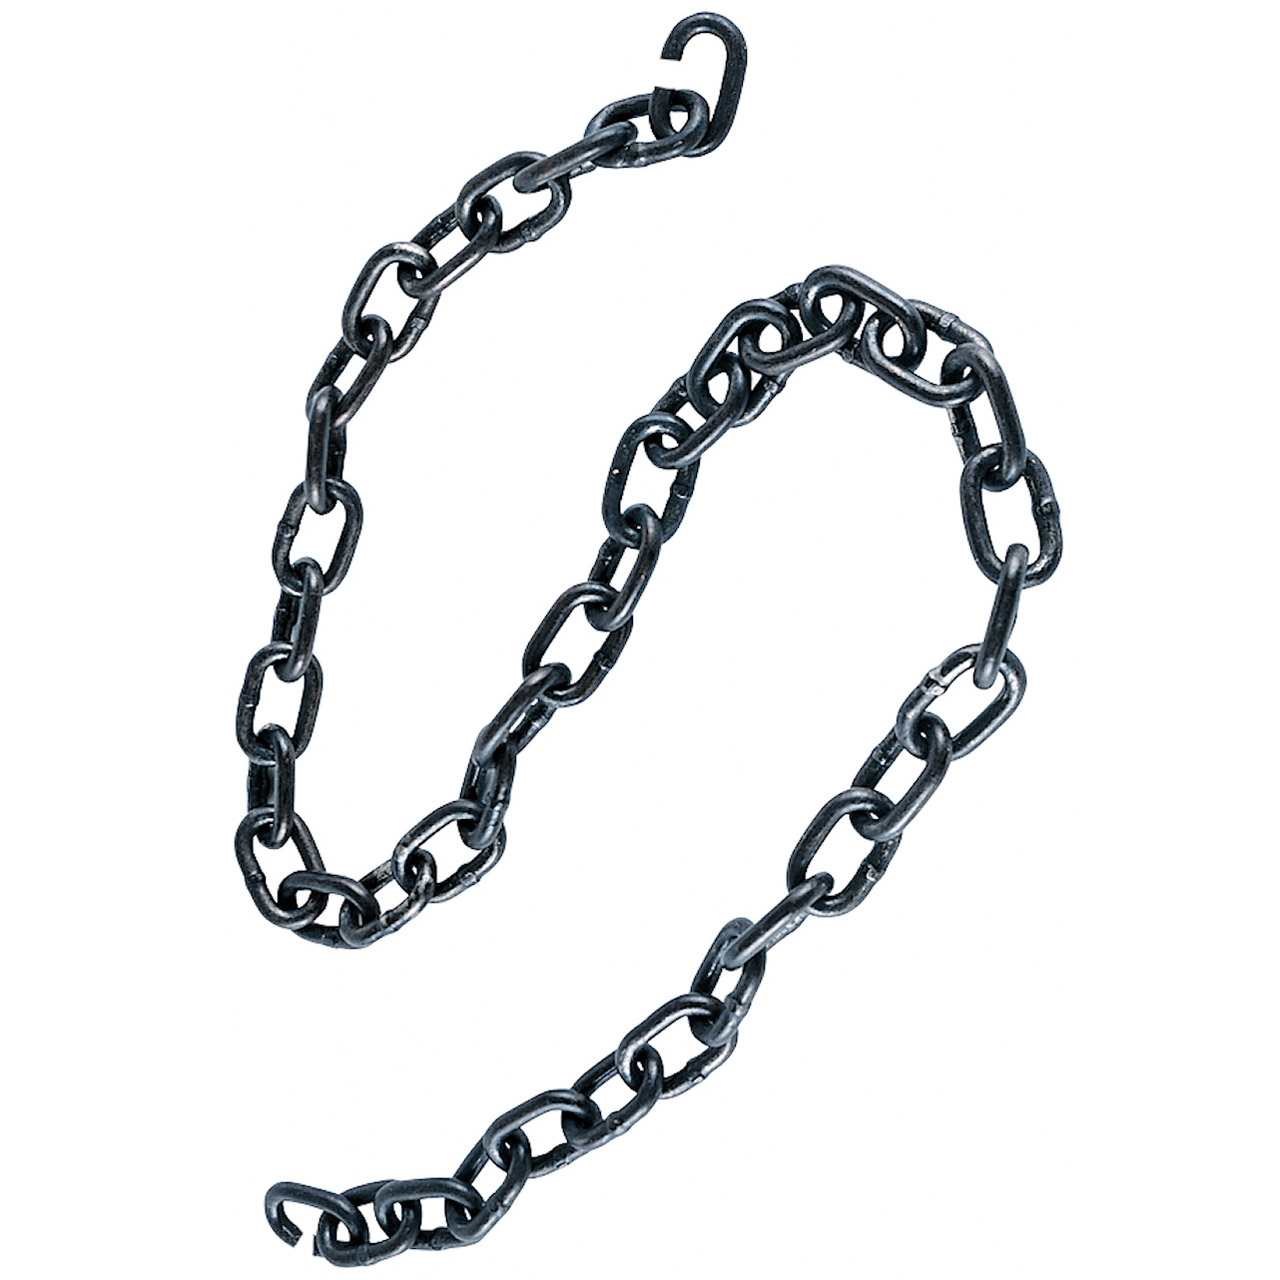 Pictured Is A Section Of Additional Wrought Iron Chain